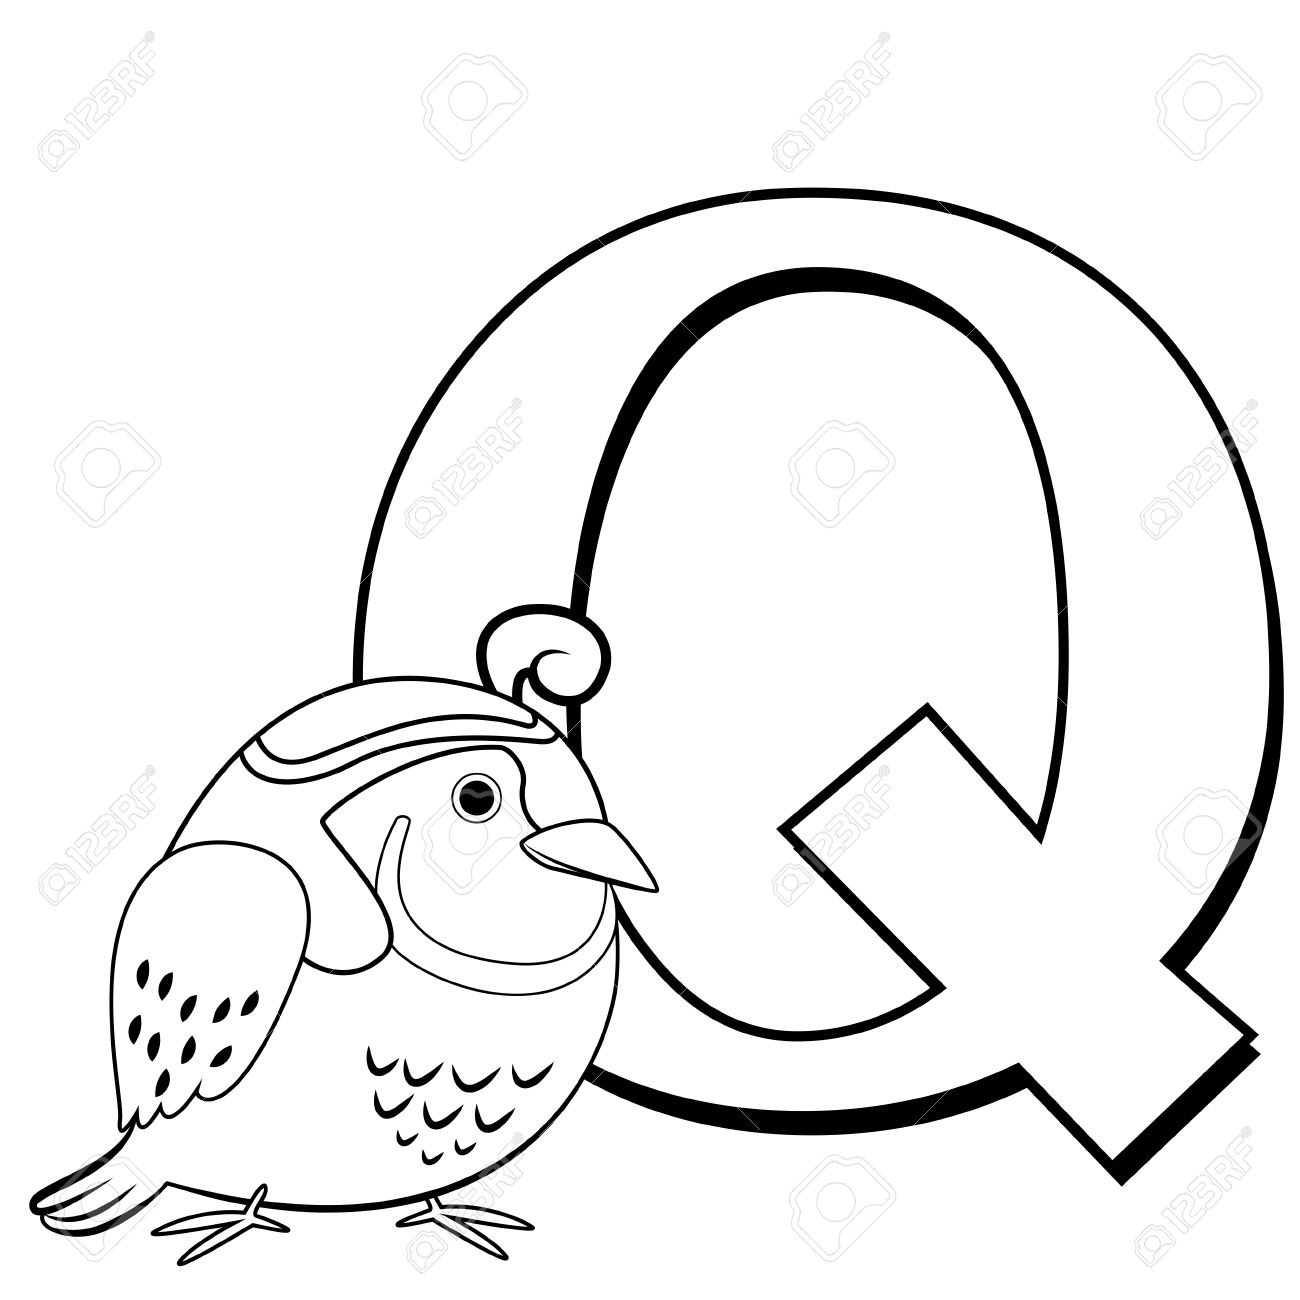 Coloring pages quail - Coloring Alphabet For Kids Q With Quail Stock Vector 16174570